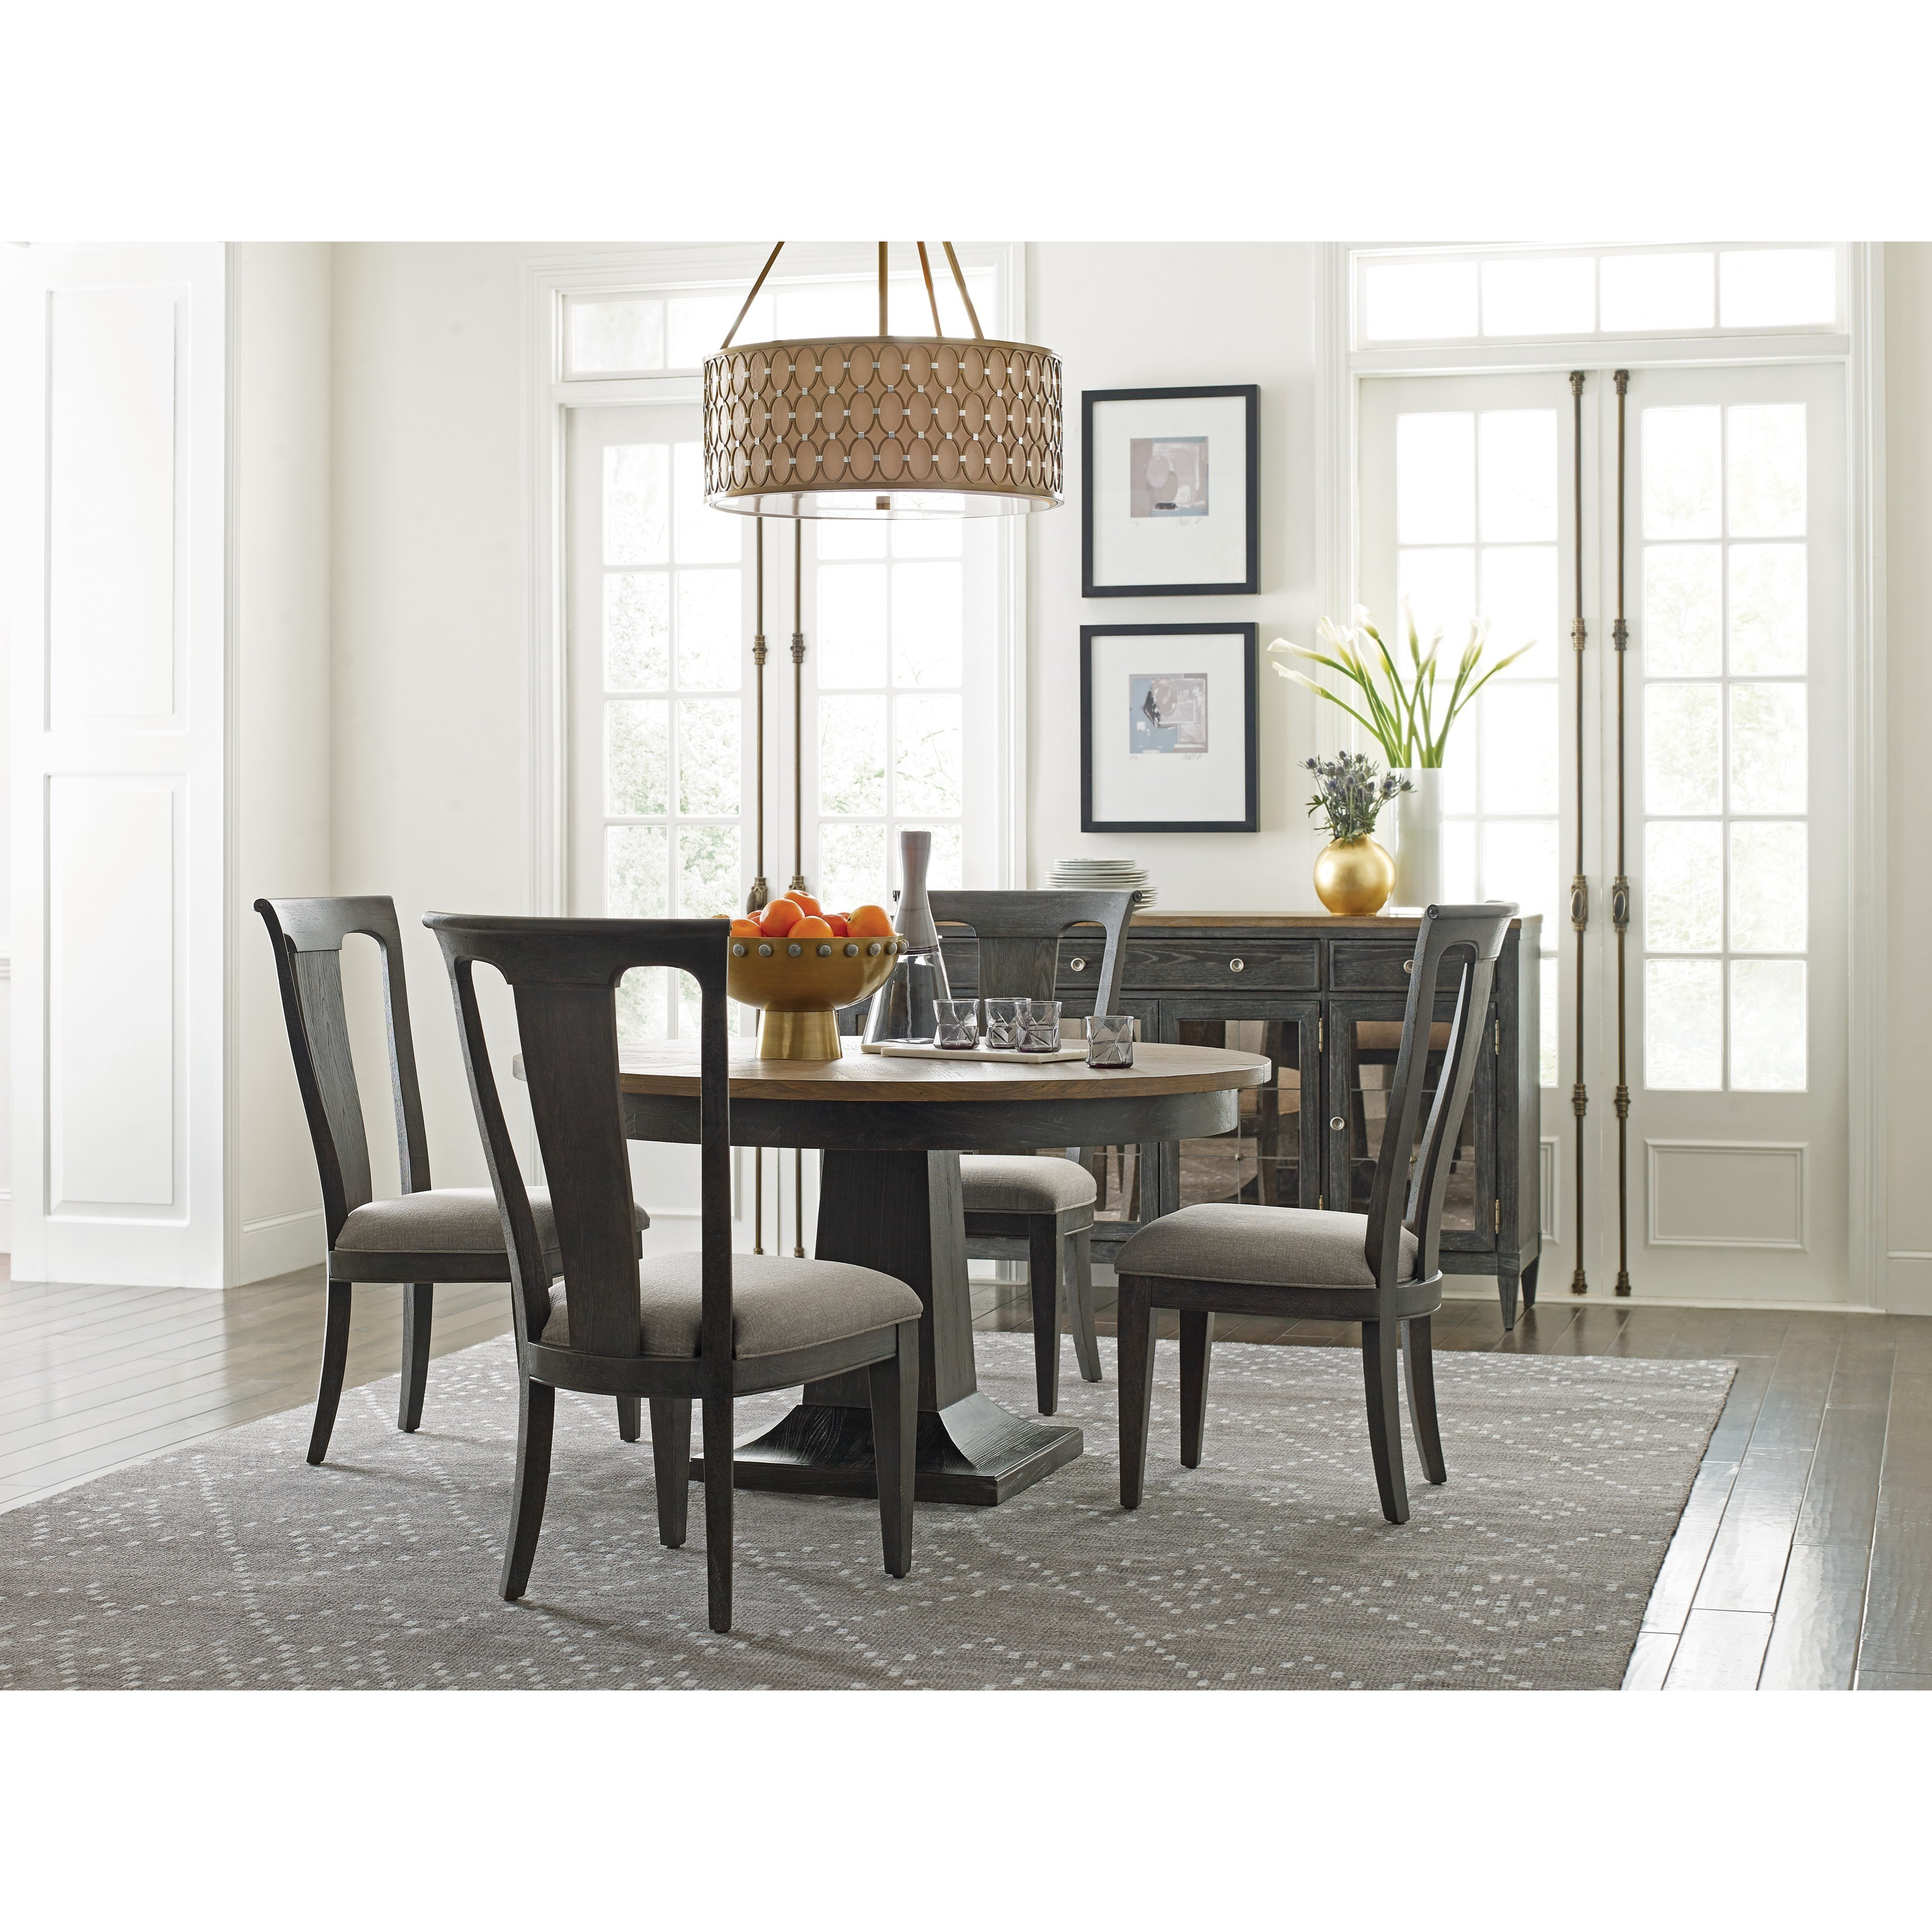 Ardennes Casual Dining Room Group by American Drew at Alison Craig Home Furnishings